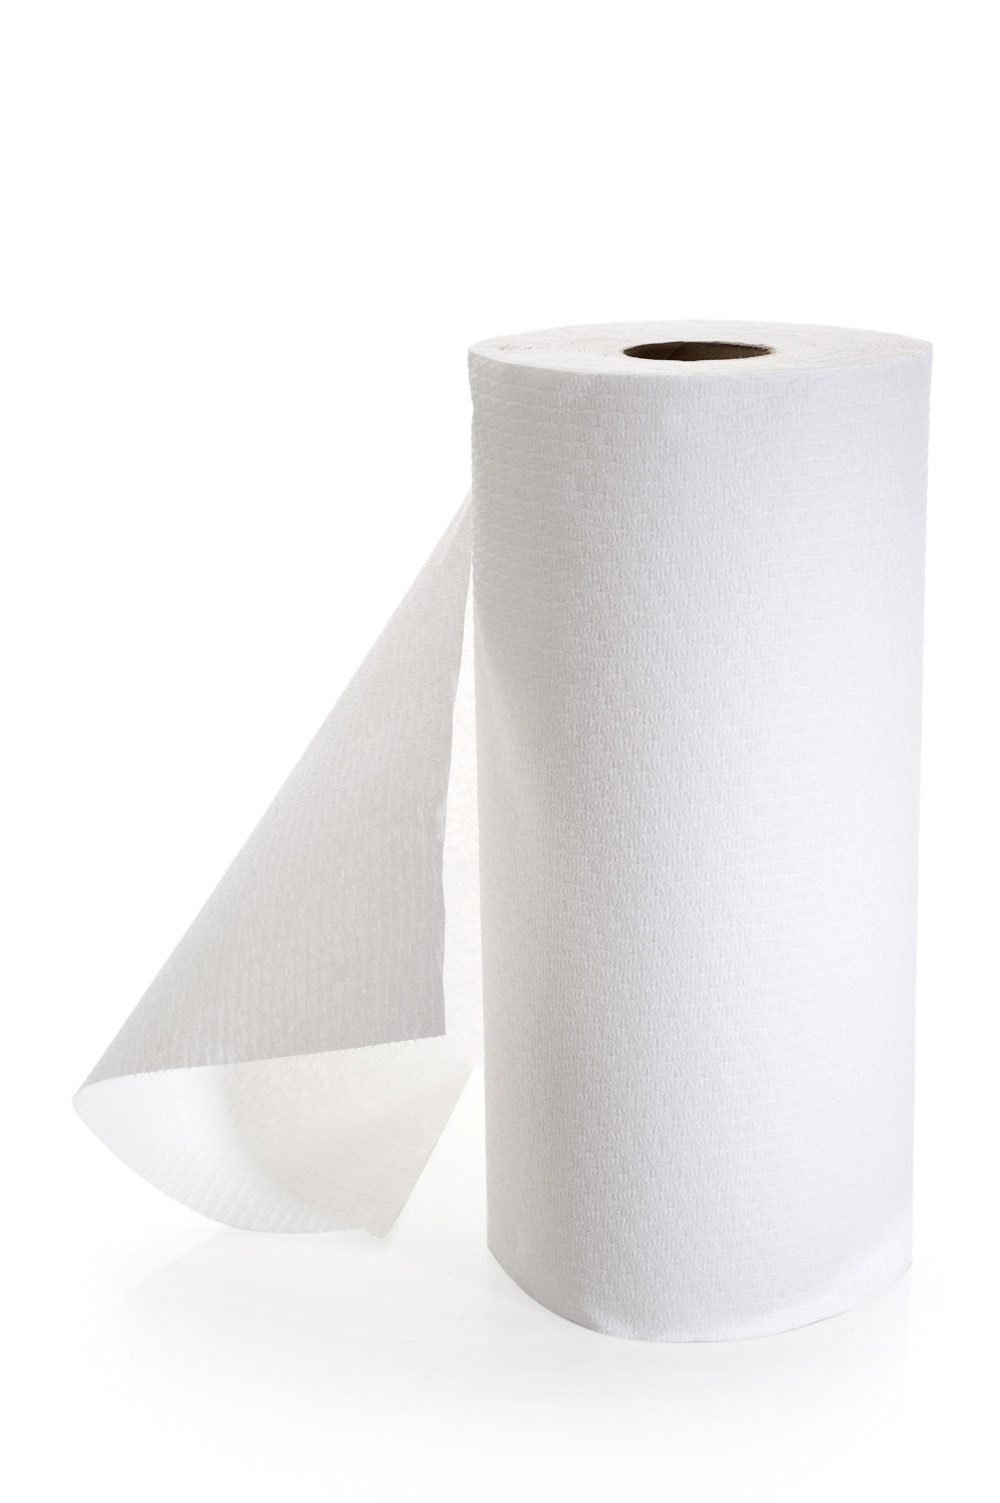 Toilet Paper Roll 2 Ply 36 Rolls X 200 Sheets P095